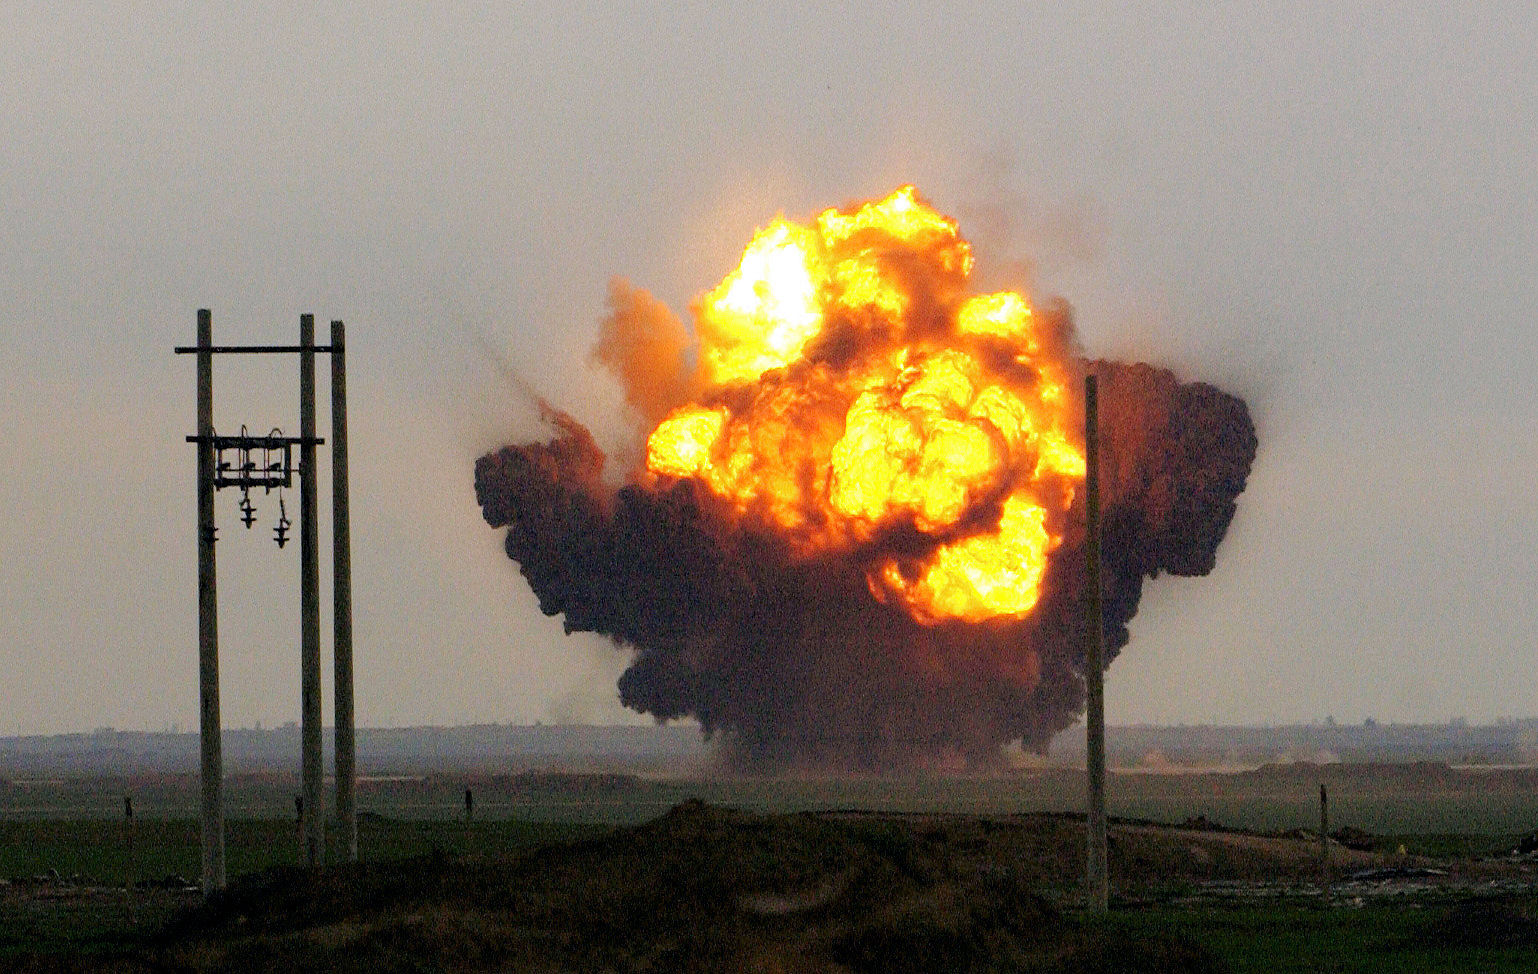 Explosions rock Al Fathah Air Field in Iraq, as Army engineers and Air Force EOD personnel work together to detonate a weapons cache.  An estimated two-million net pounds of explosives were left at the air field by the old regime, making Al Fathah the largest single weapons cache uncovered by the coalition, and they are destroying it at an average of 100,000 pounds per day.  (Photo by USAF Staff Sgt. Jeffrey A. Wolfe)  RELEASED